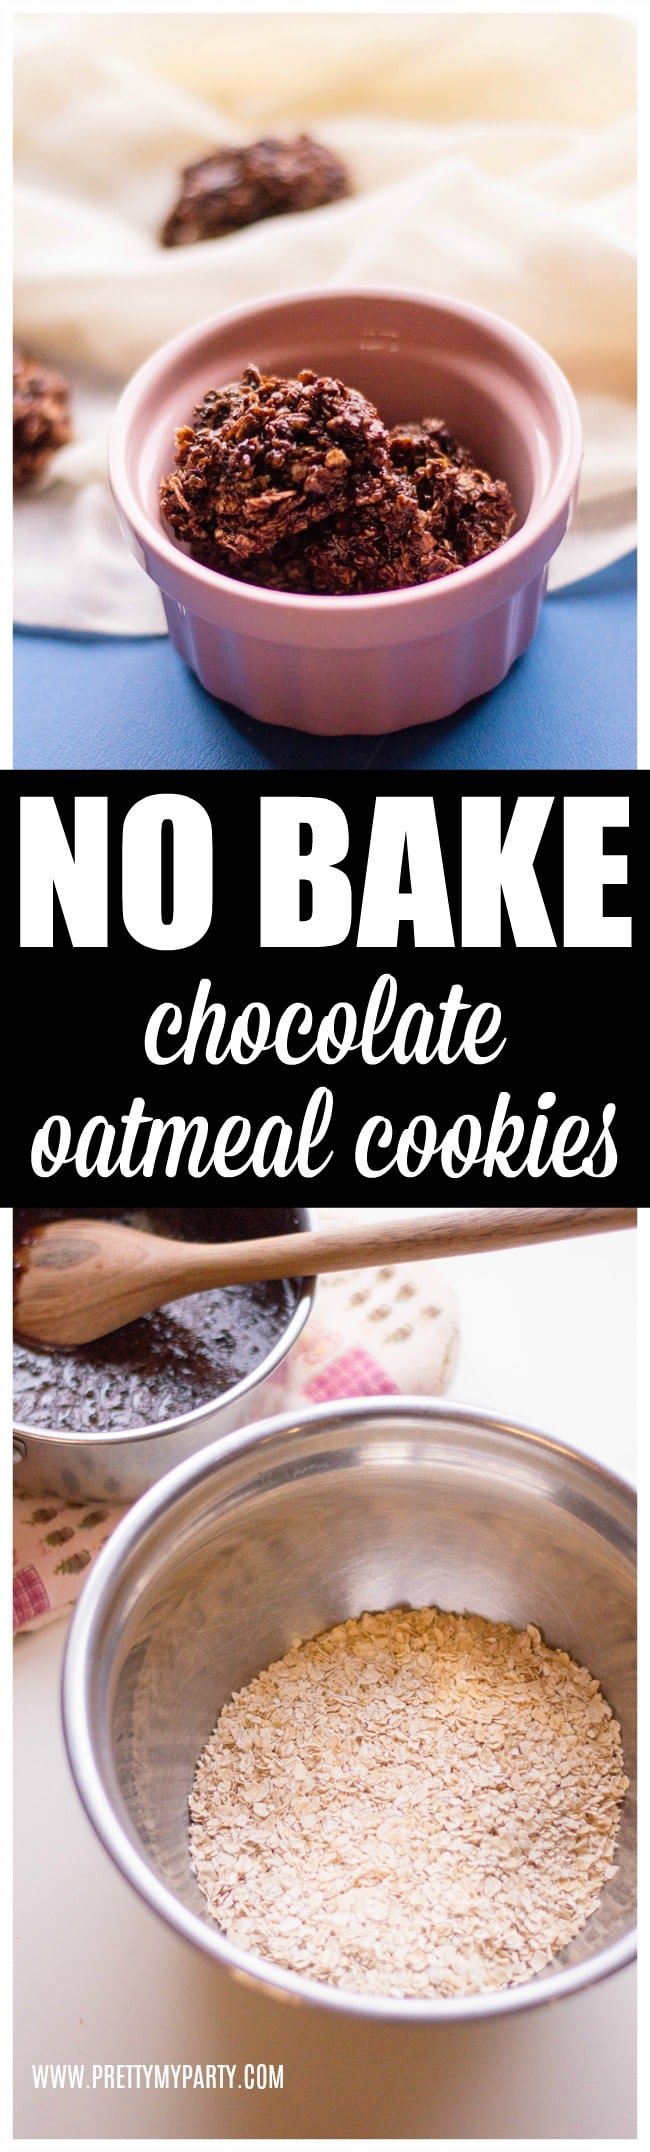 No Bake Chocolate Oatmeal Cookies - Pretty My Party